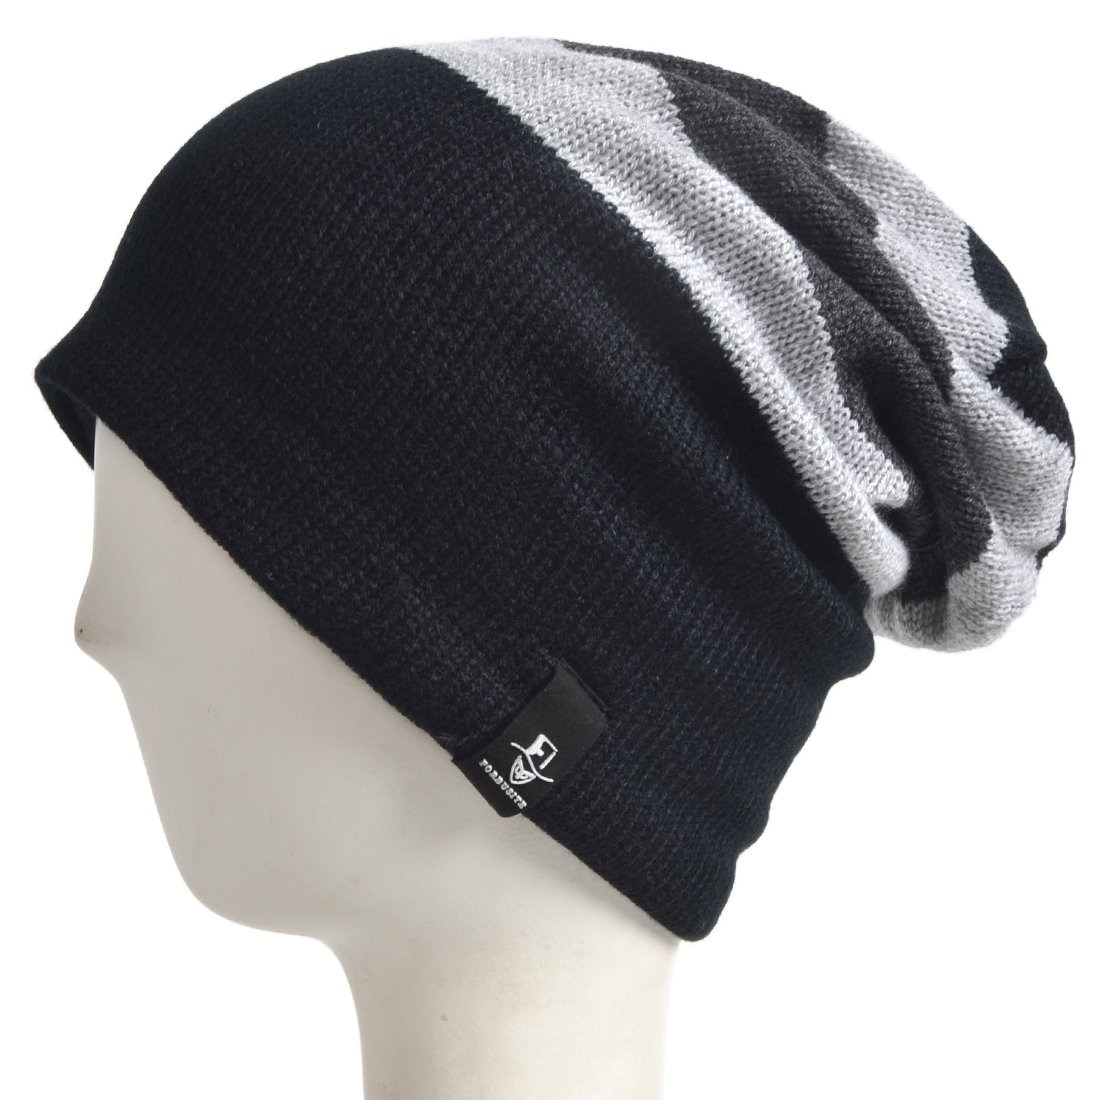 d9989d8d1 Amazon.com: VECRY Trendy Baby Beanie Winter Hat Cute Kids Boys Girls  Toddler Knitted Skull Cap (Black&Grey): Clothing